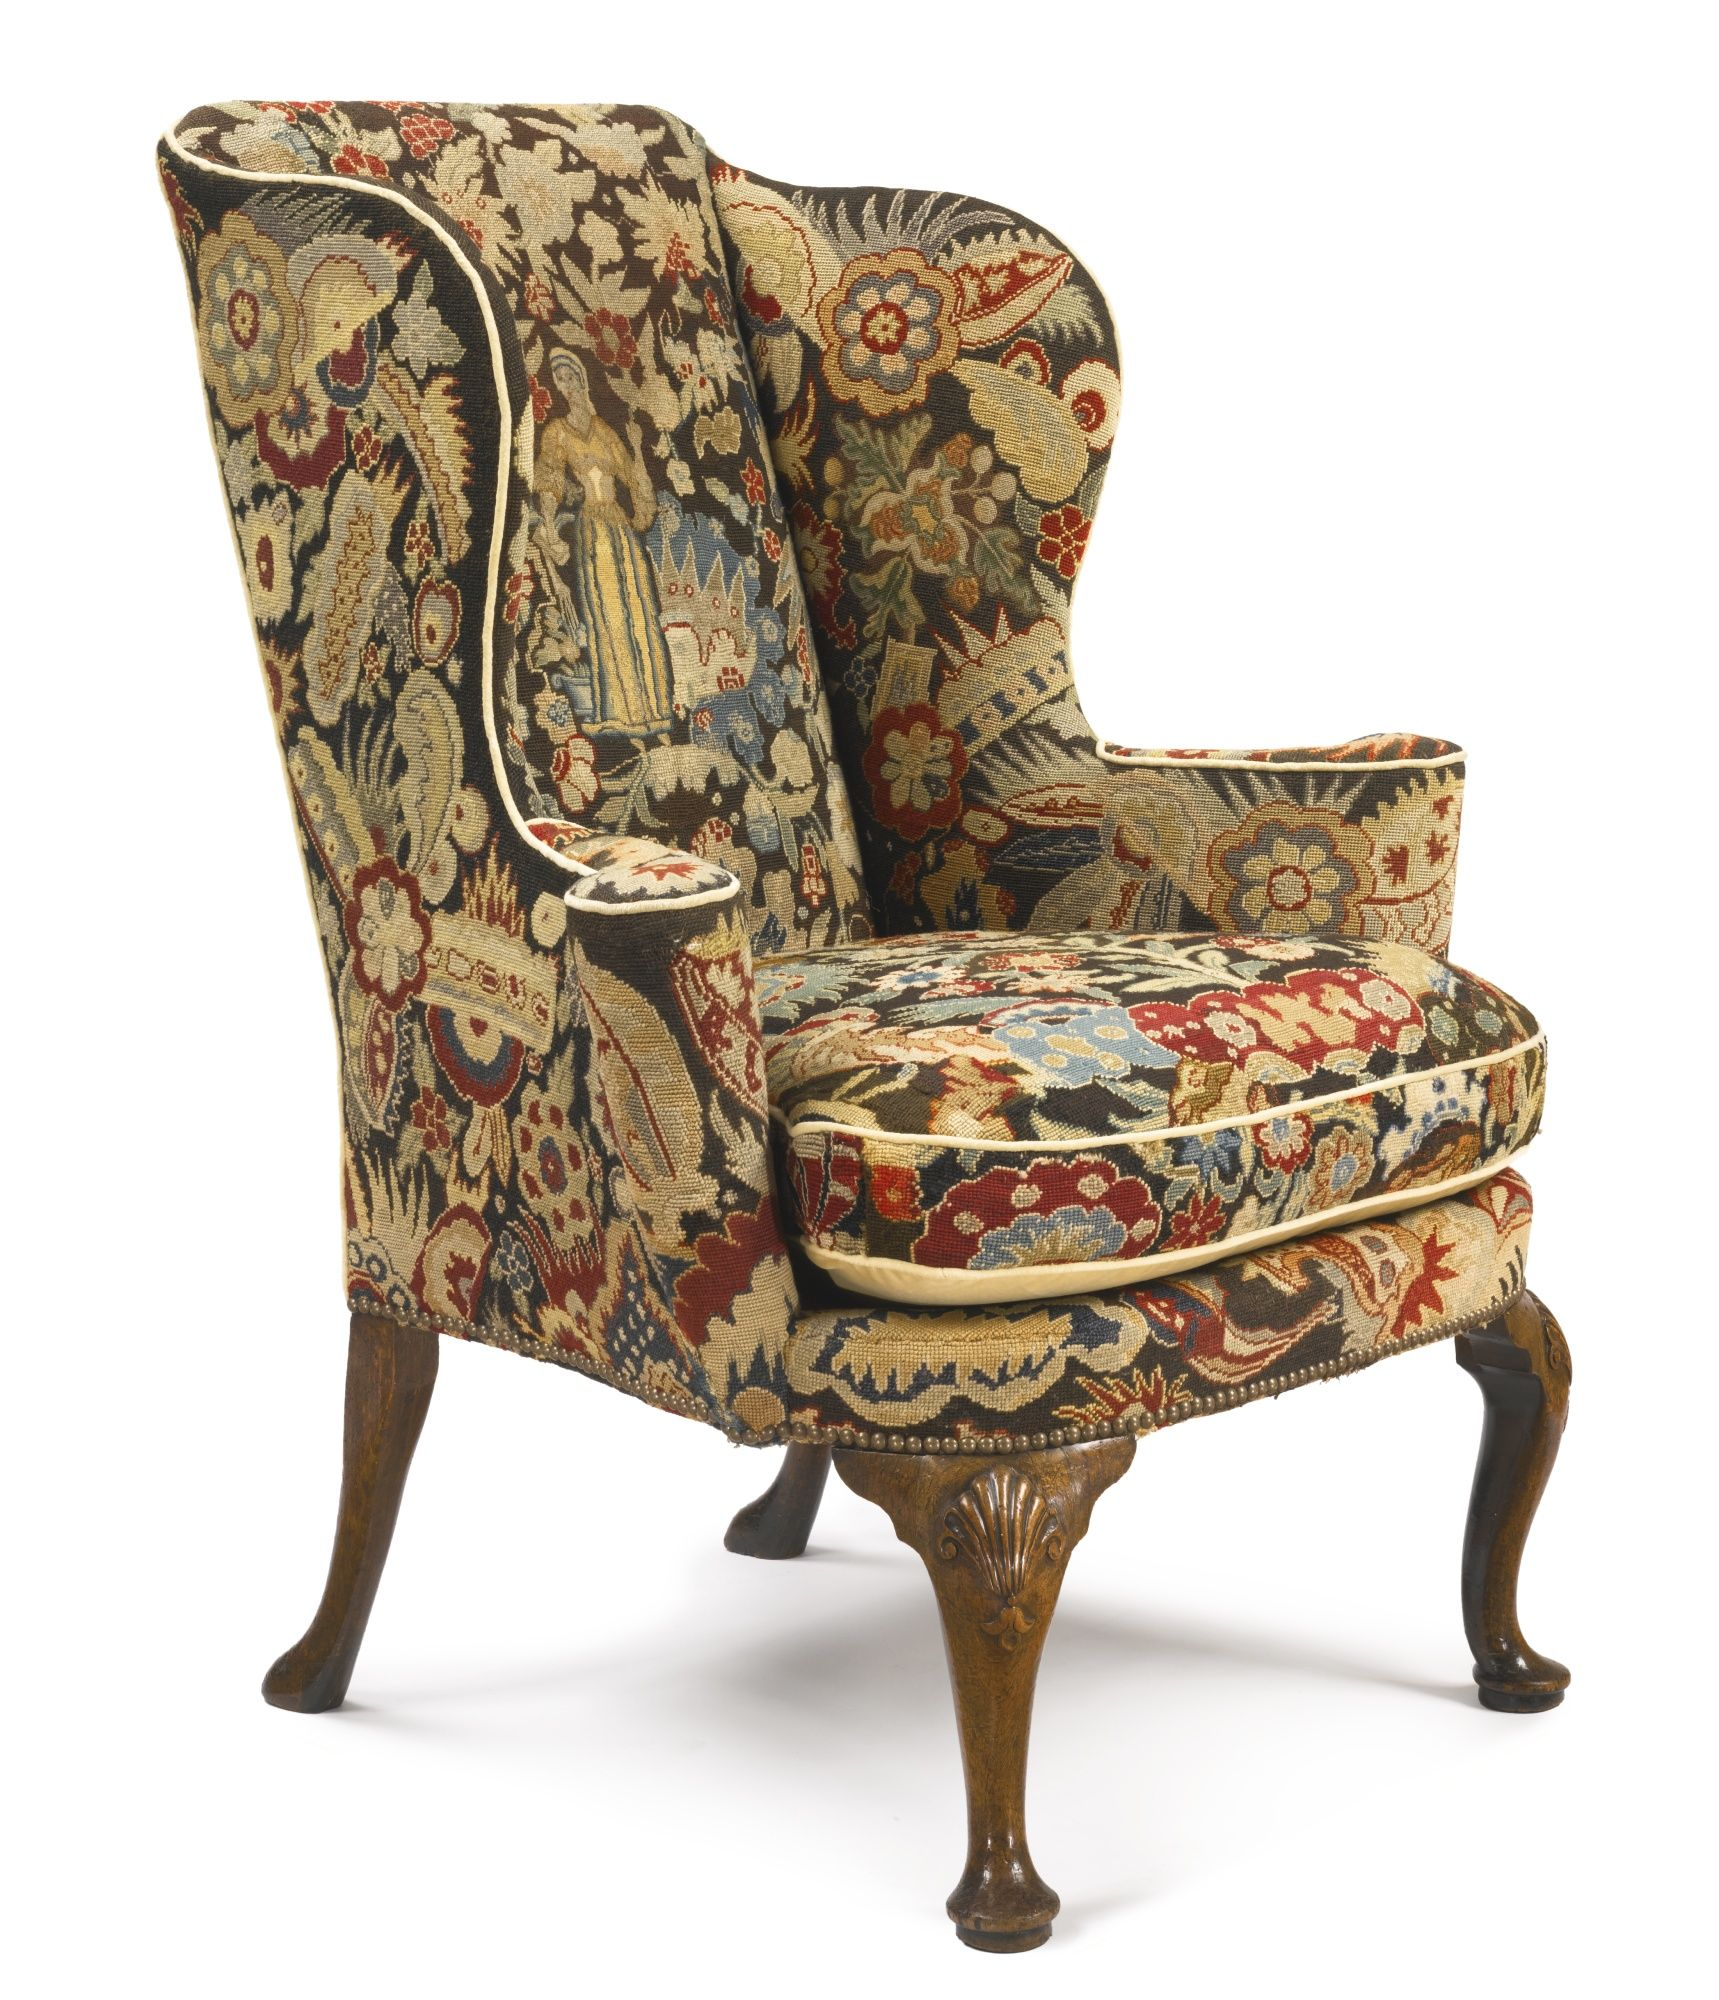 Merveilleux George II Needlework Upholstered Walnut Wing Armchair   Circa 1730 L  SOTHEBYu0027S AUCTION OF THE COLLECTION OF NIKI U0026 JOE GREGORY NIKI U0026 JOE  GREGORY THE 24th ...